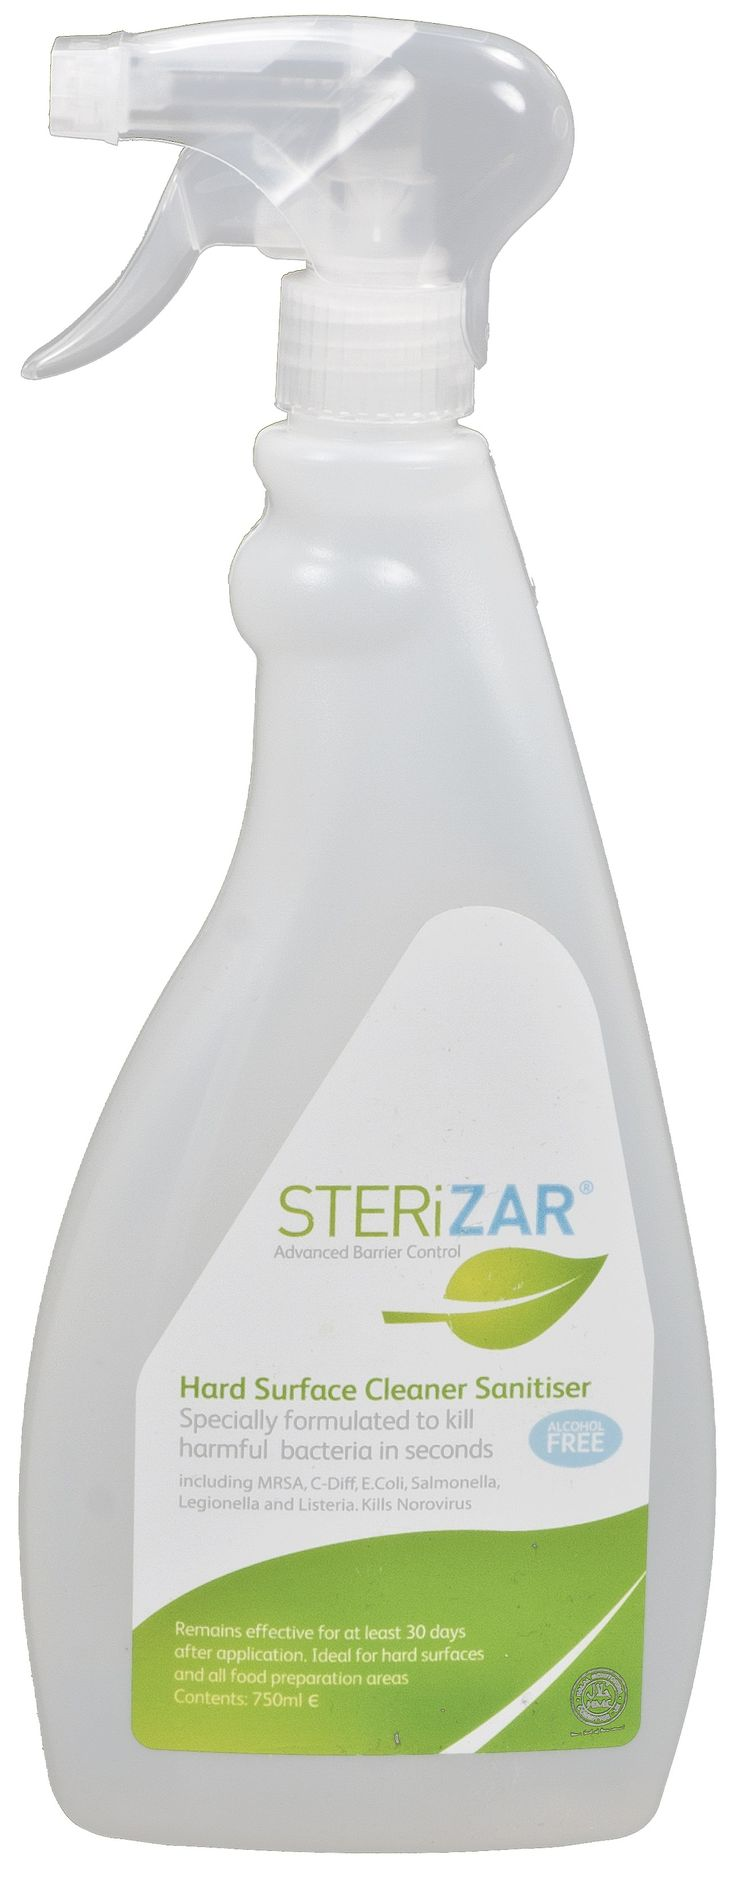 #martinservices #greenproducts #hygieneproducts #sanitarydisposal #cleaning Visit our website and discover more about our products: http://www.martinservices.ie/green-solutions/sterizar-hard-surface-cleaner-1788.html